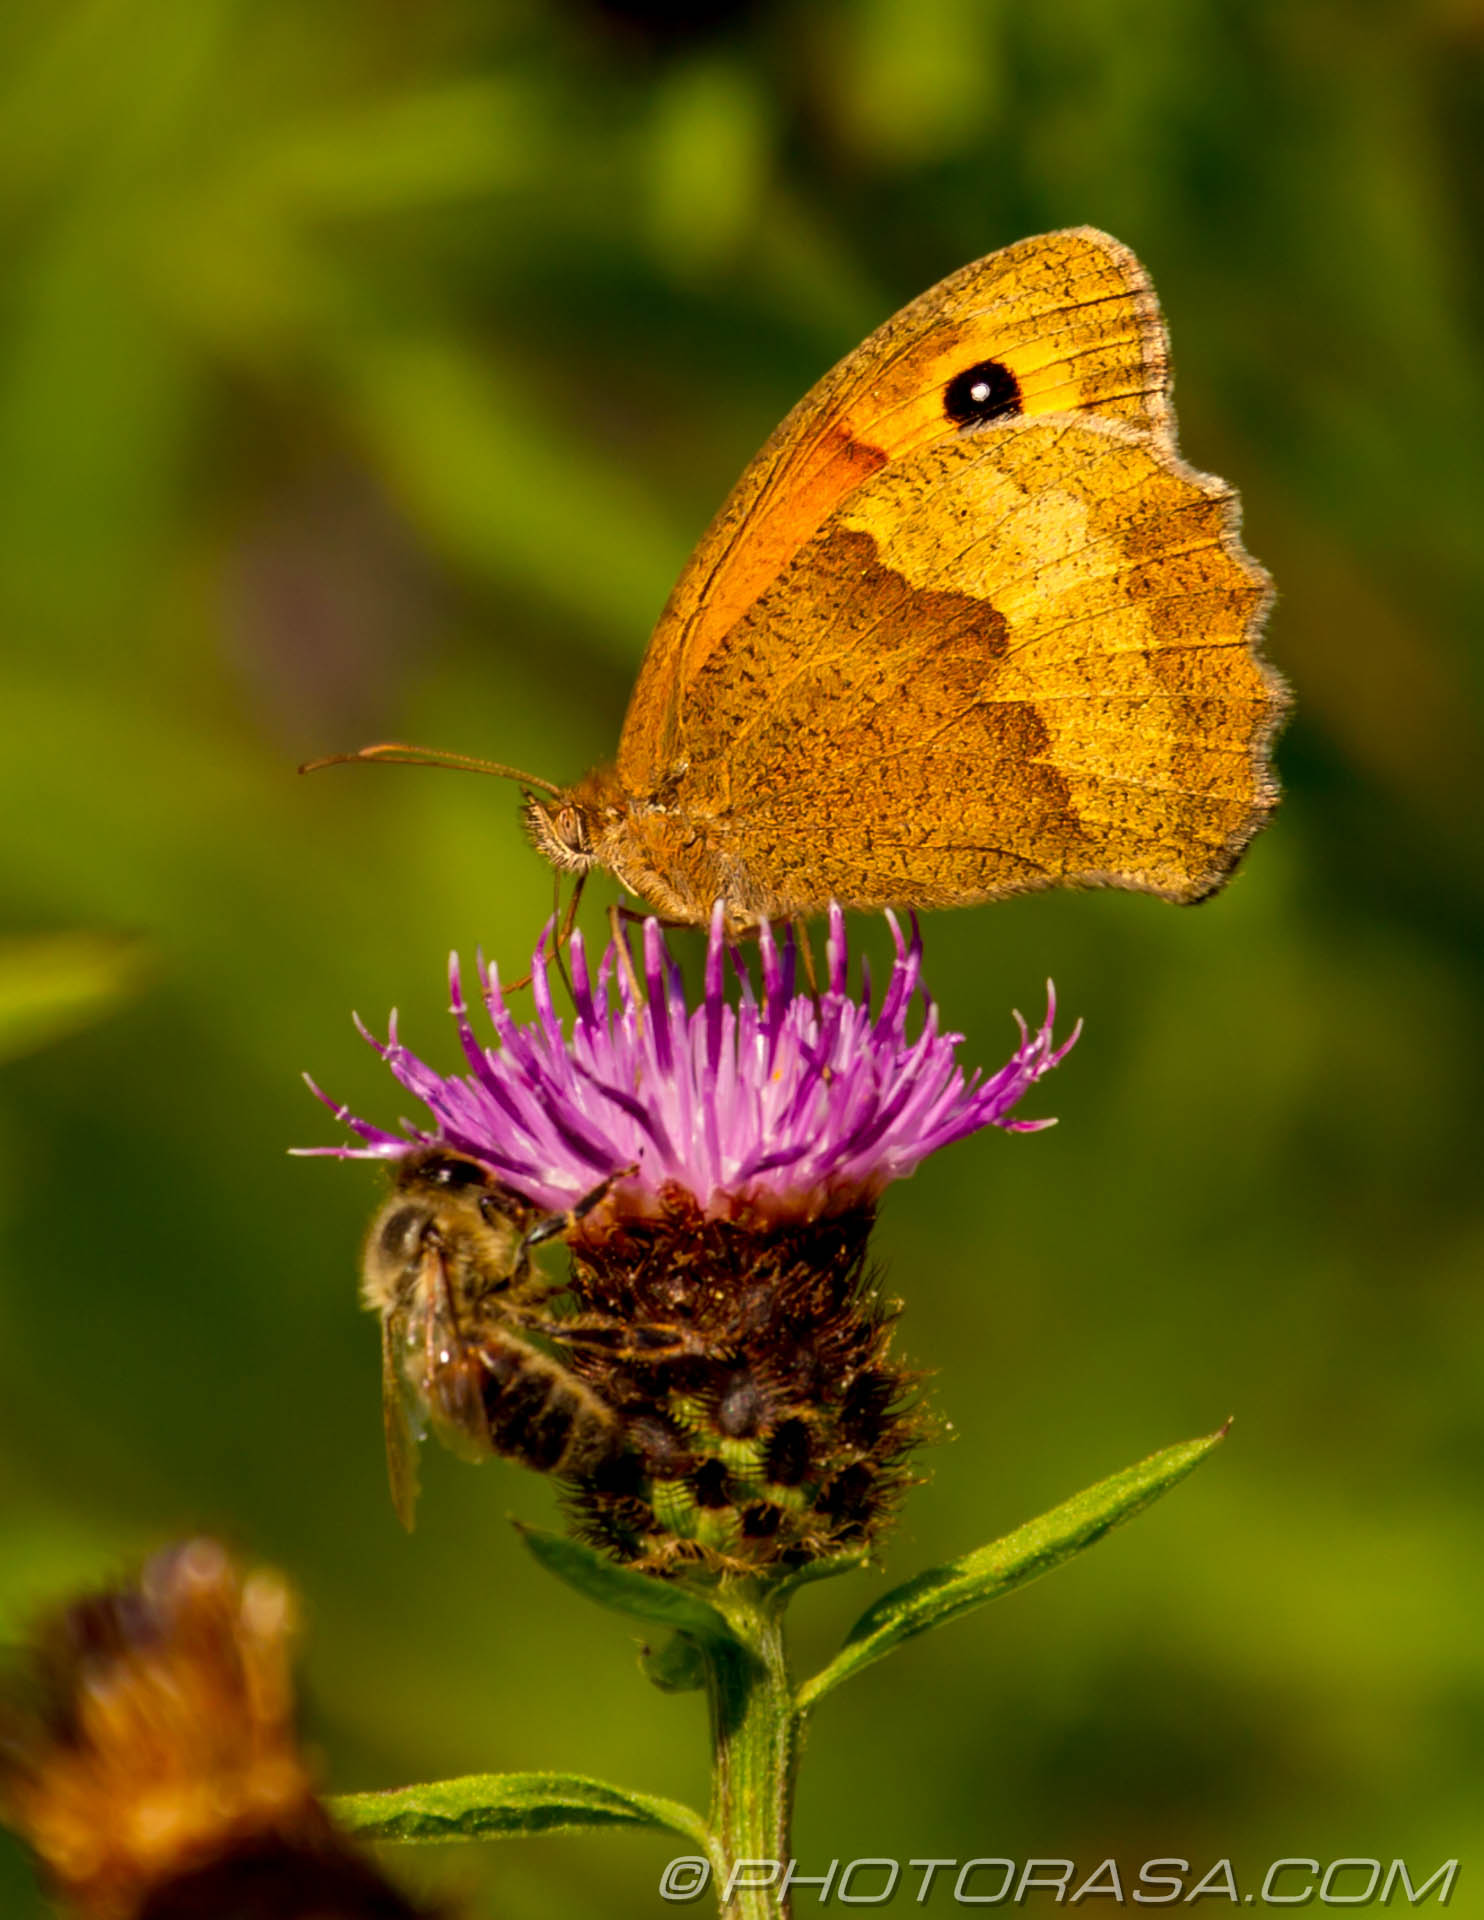 http://photorasa.com/meadow-brown-butterfly/meadow-brown-on-thistle-flower/